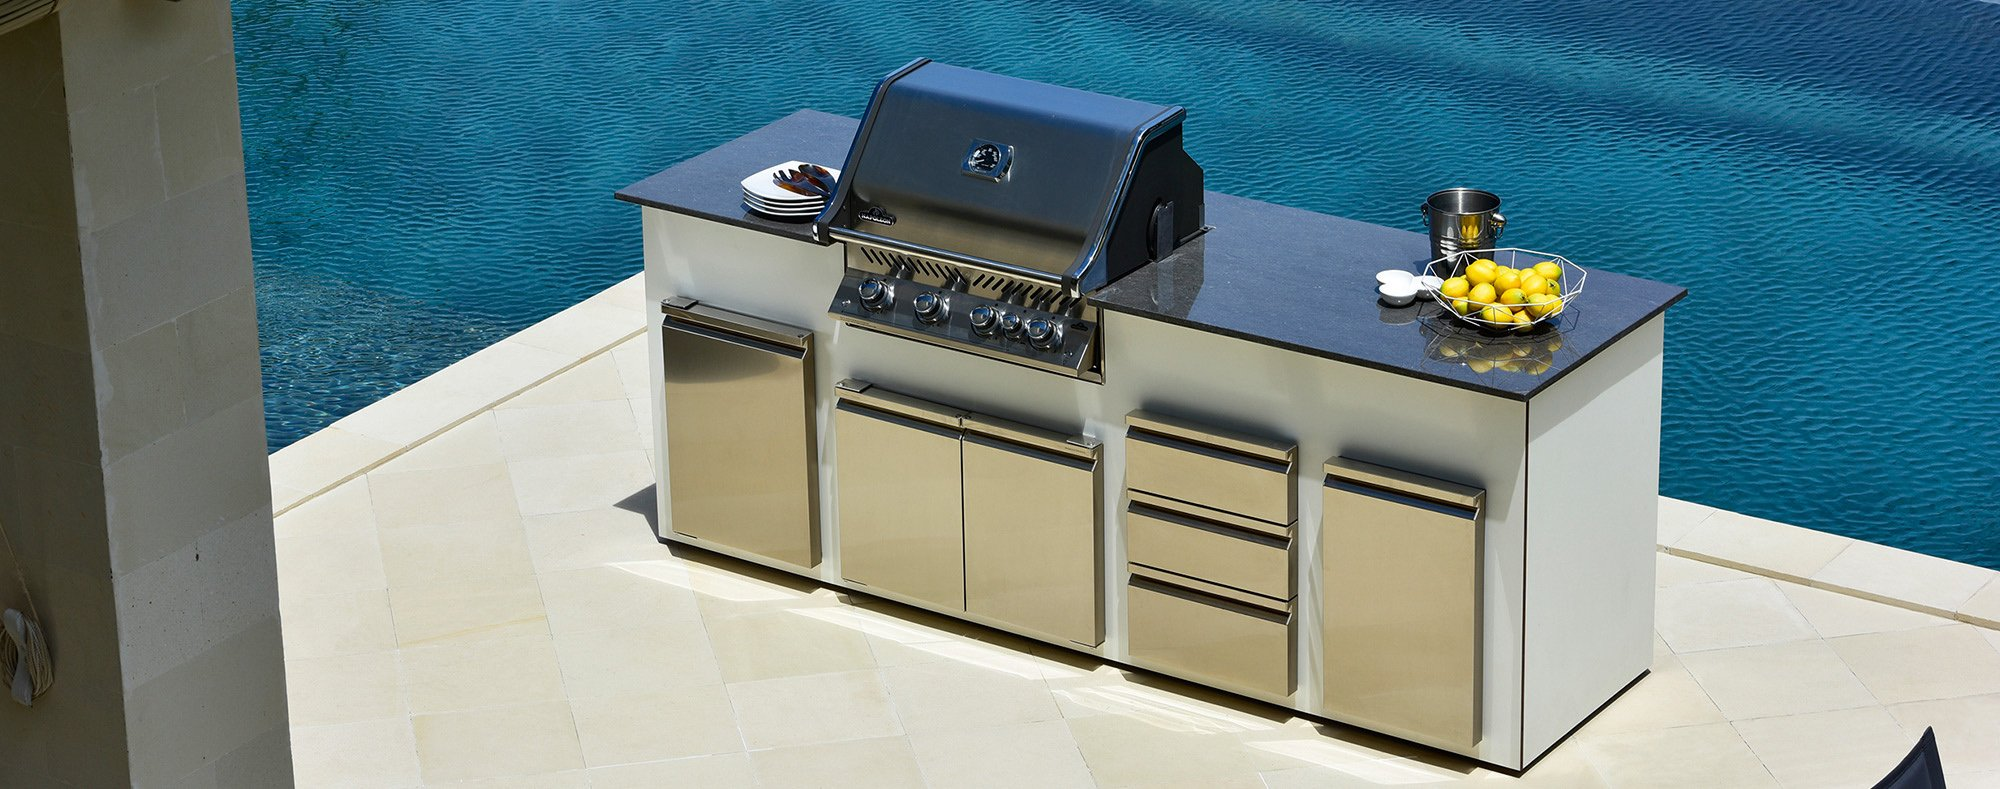 Outdoor kitchen unit